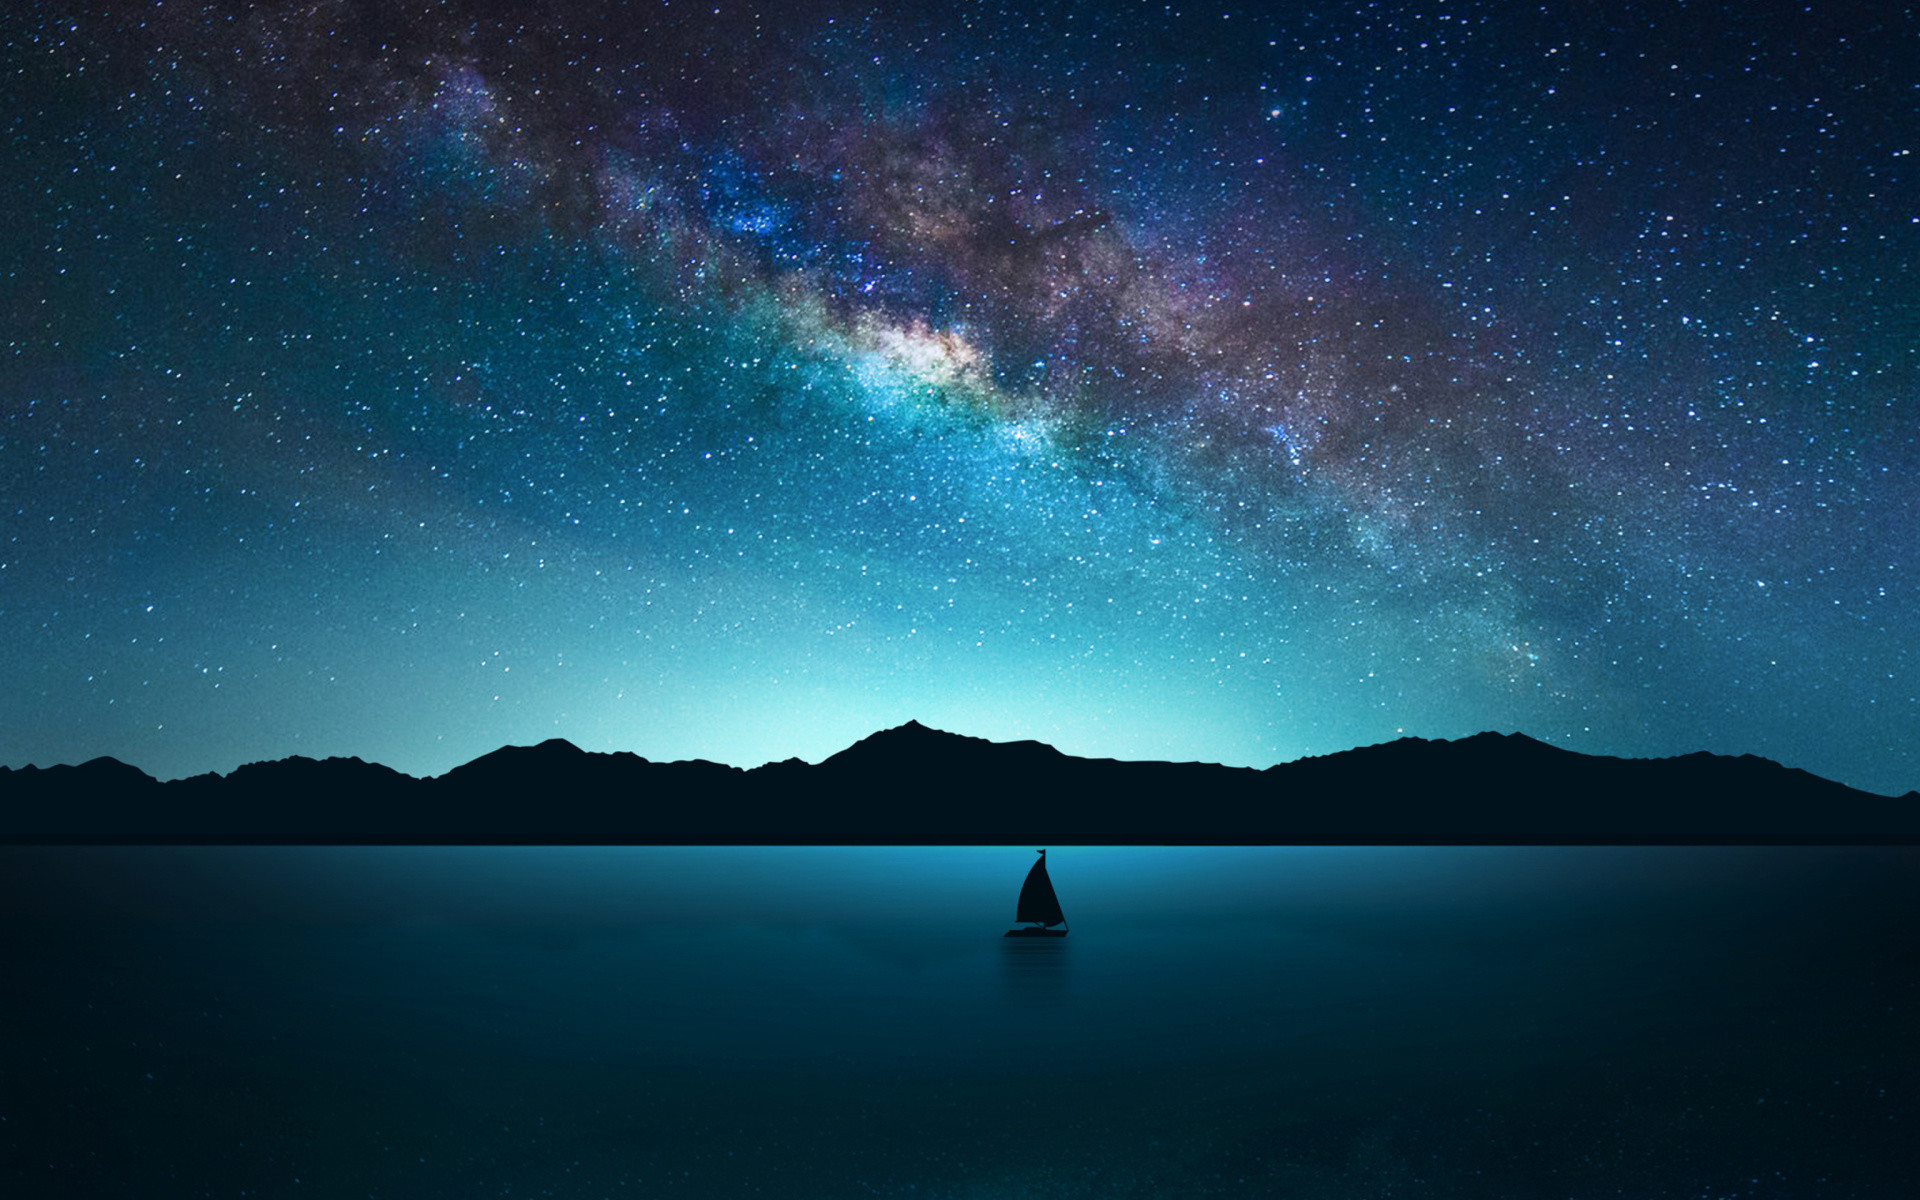 HD Wallpaper Night Sky 70 images